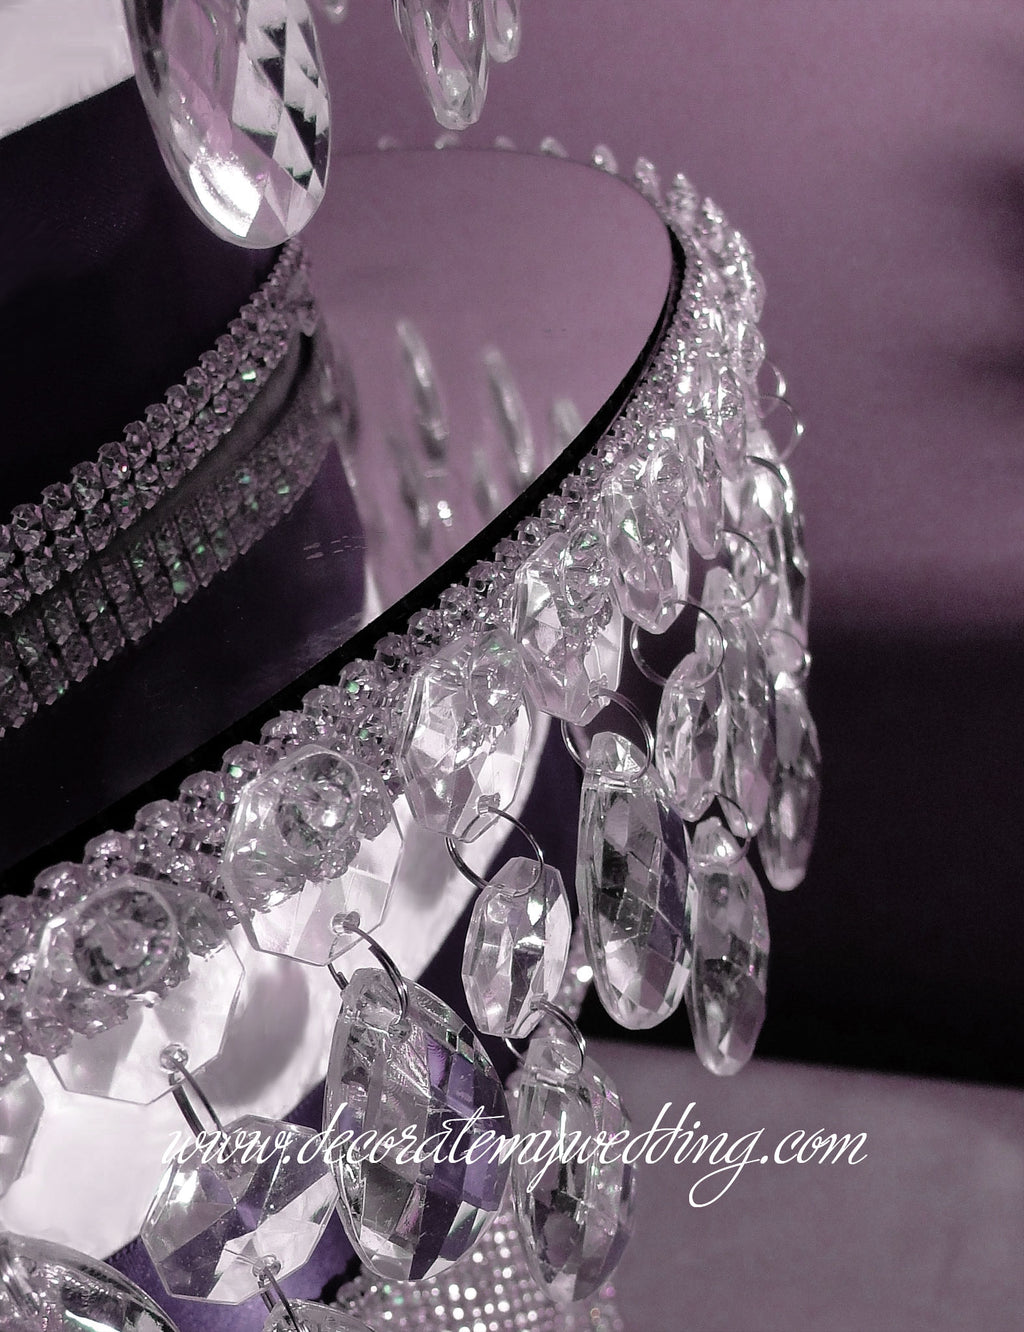 This cake separator is placed on top of a layer of cake to add a tier of dangling crystal beads and teardrop pendants.